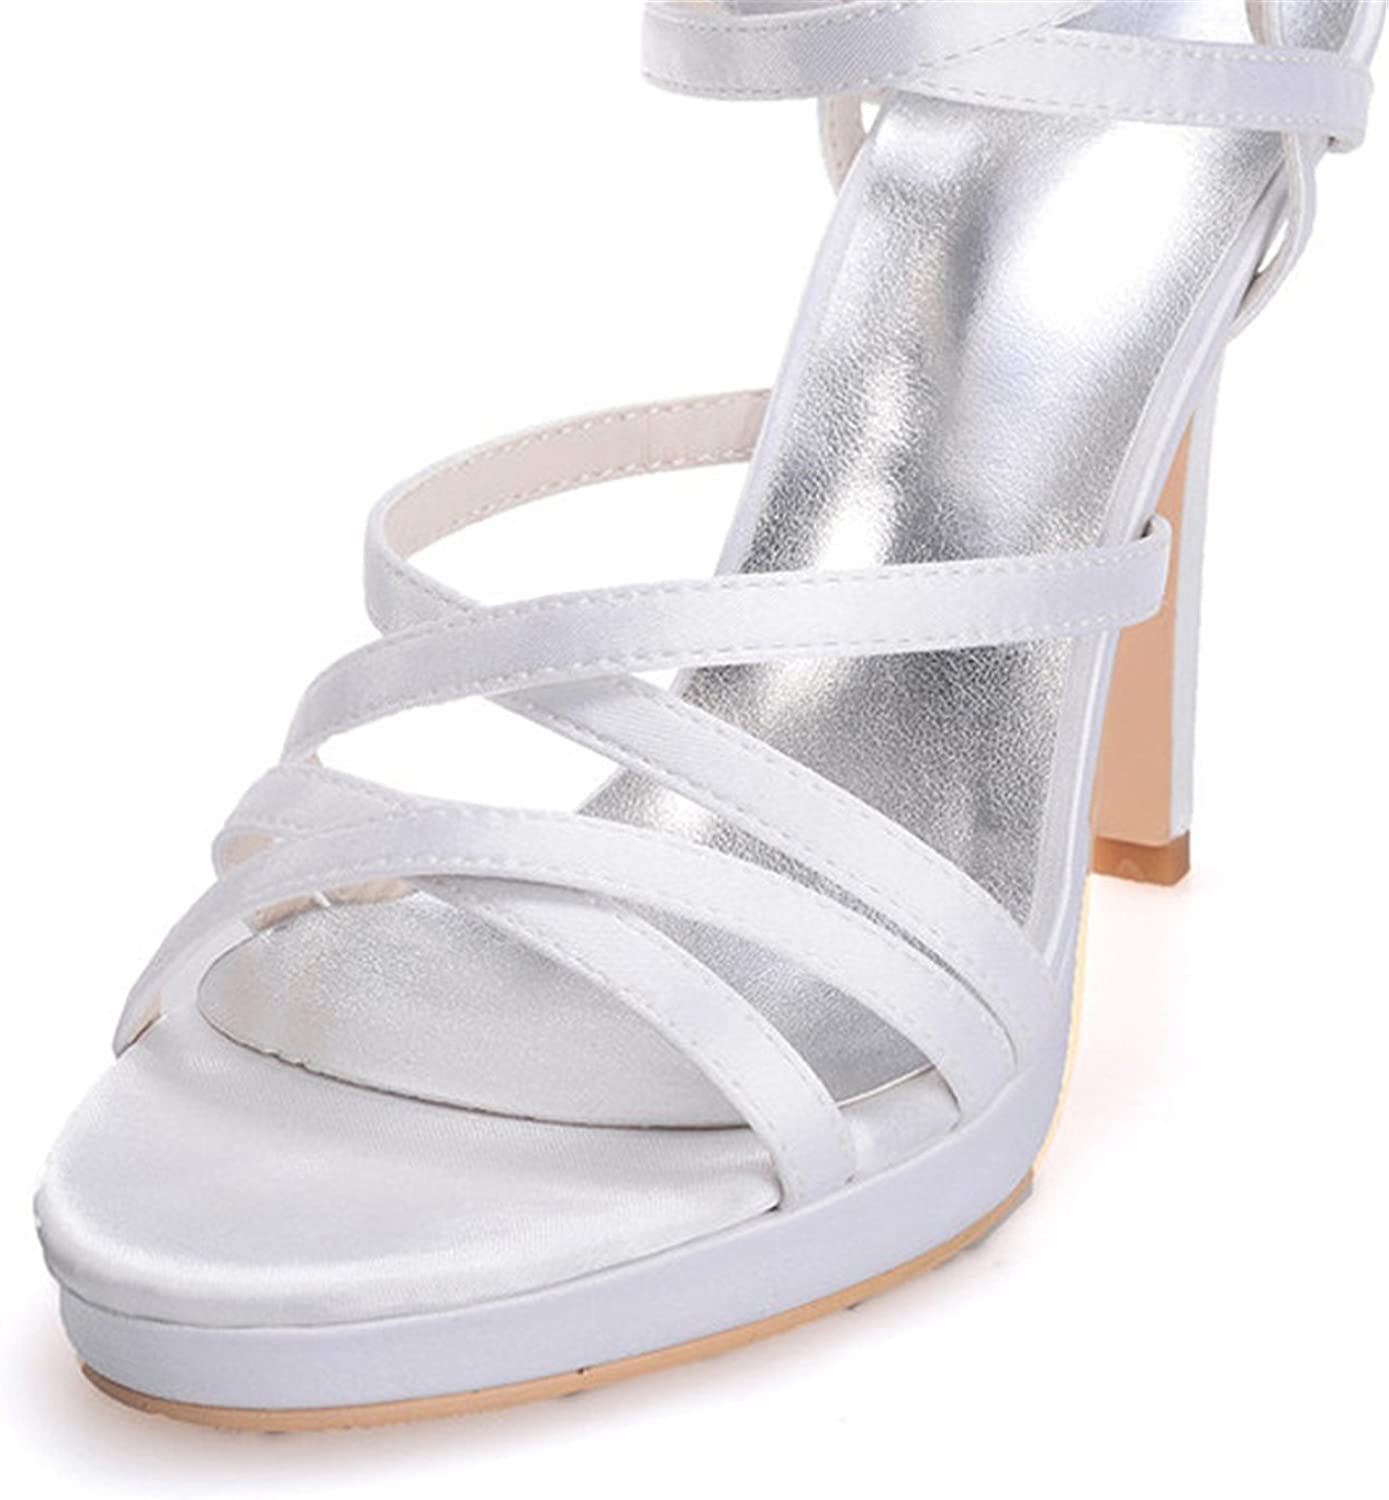 Uryouthstyle Platform High Heel Sandals Women's Stiletto Party Prom shoes